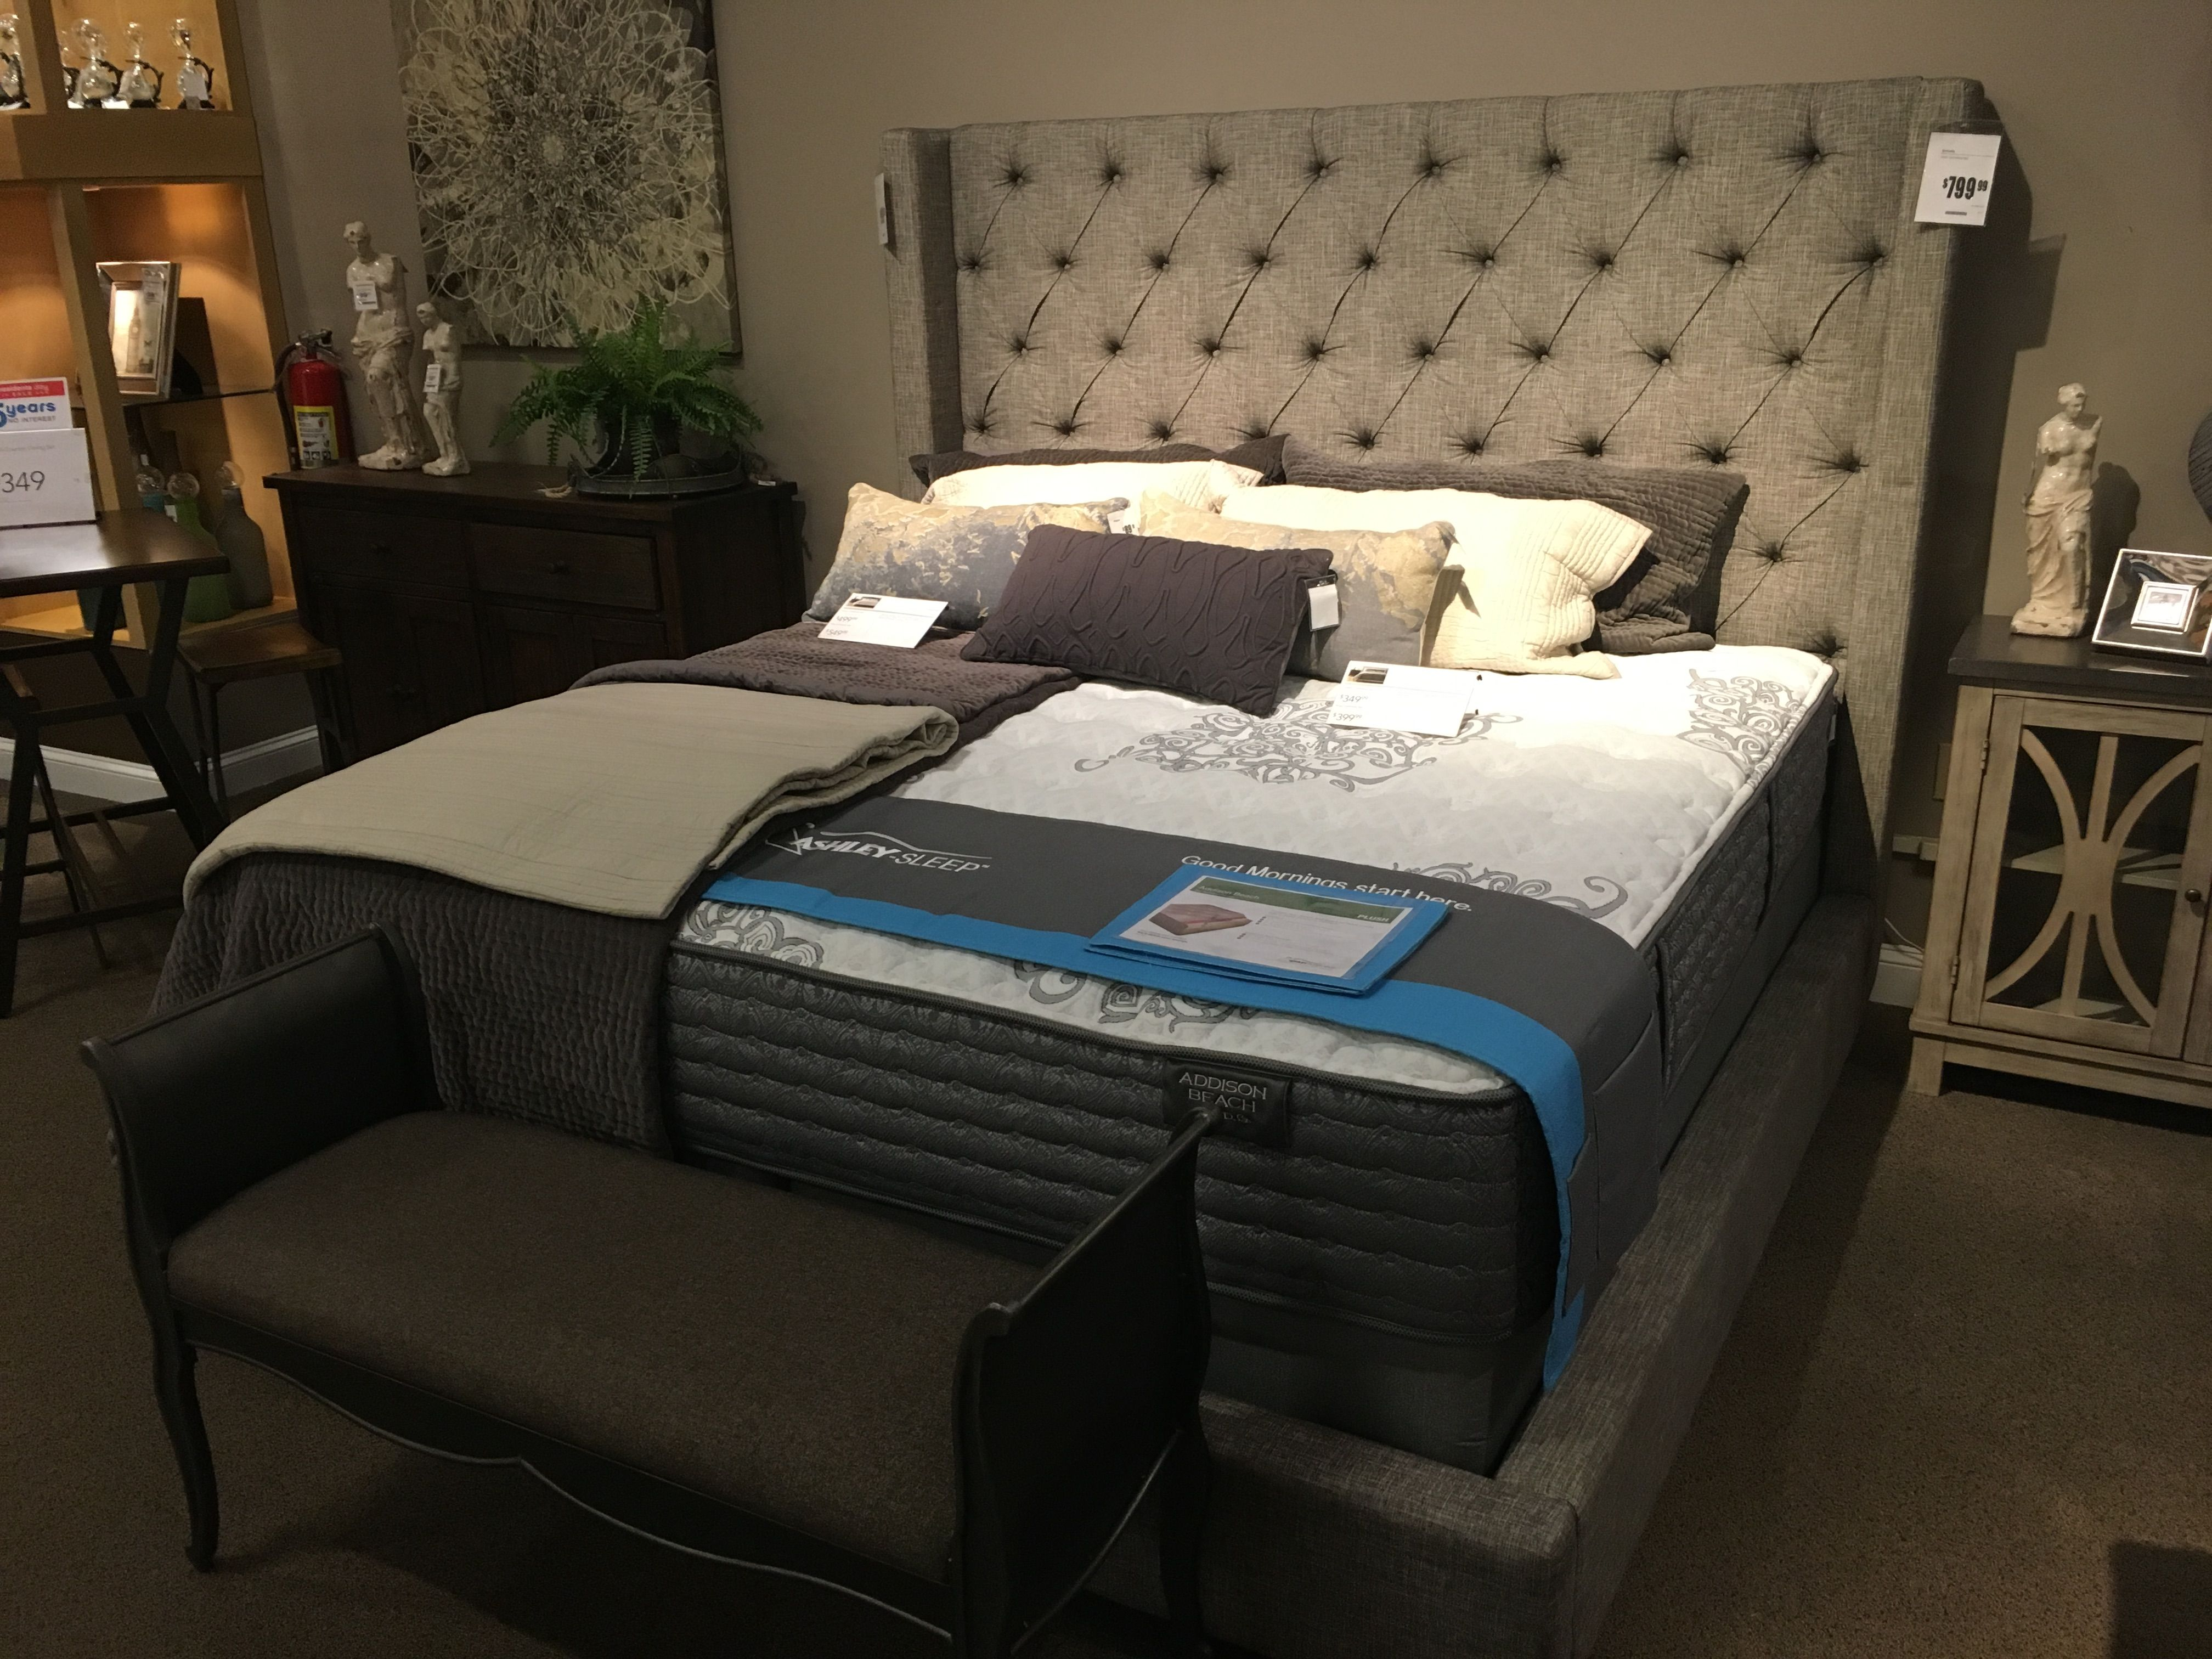 sofa king awesome t shirt como sofabord sorinella bed 67hx69w quot furniture ideas pinterest